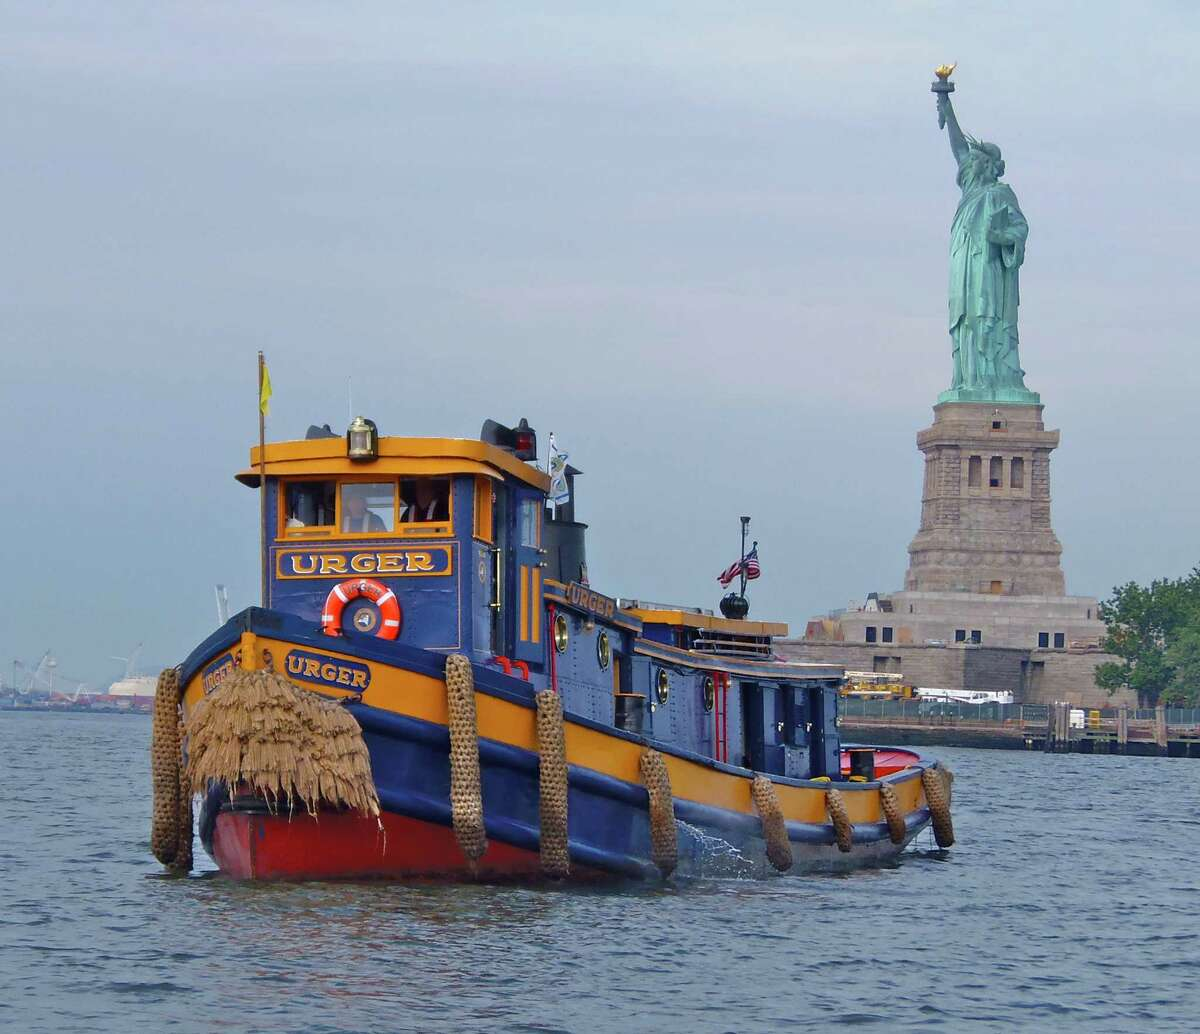 The historic tug Urger, built in 1901 and one of the oldest working tugs in the country and a floating classroom for school kids, is slated to be pulled from the water at Waterford and put on land at a new Thruway rest area at Exit 13, near Canajoharie, angering maritime historians. (Provided)